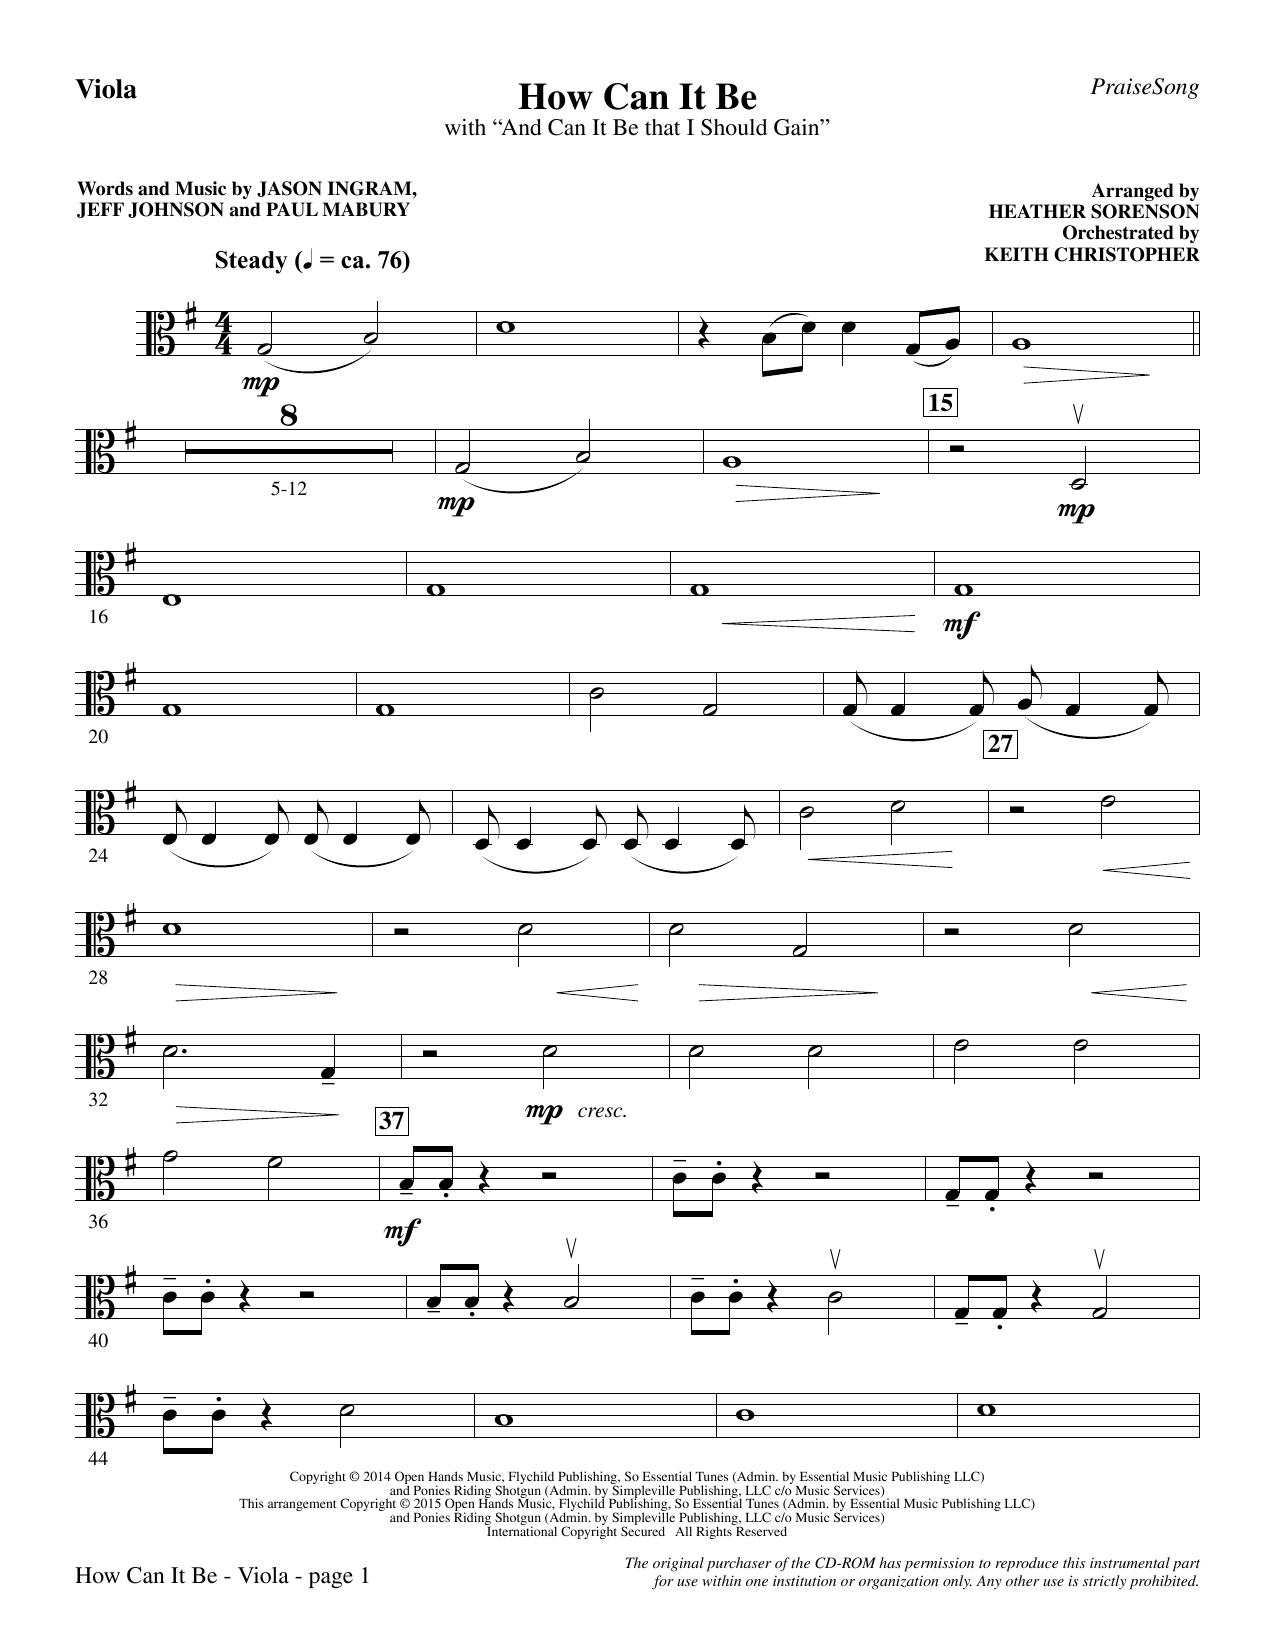 How Can It Be - Viola Sheet Music